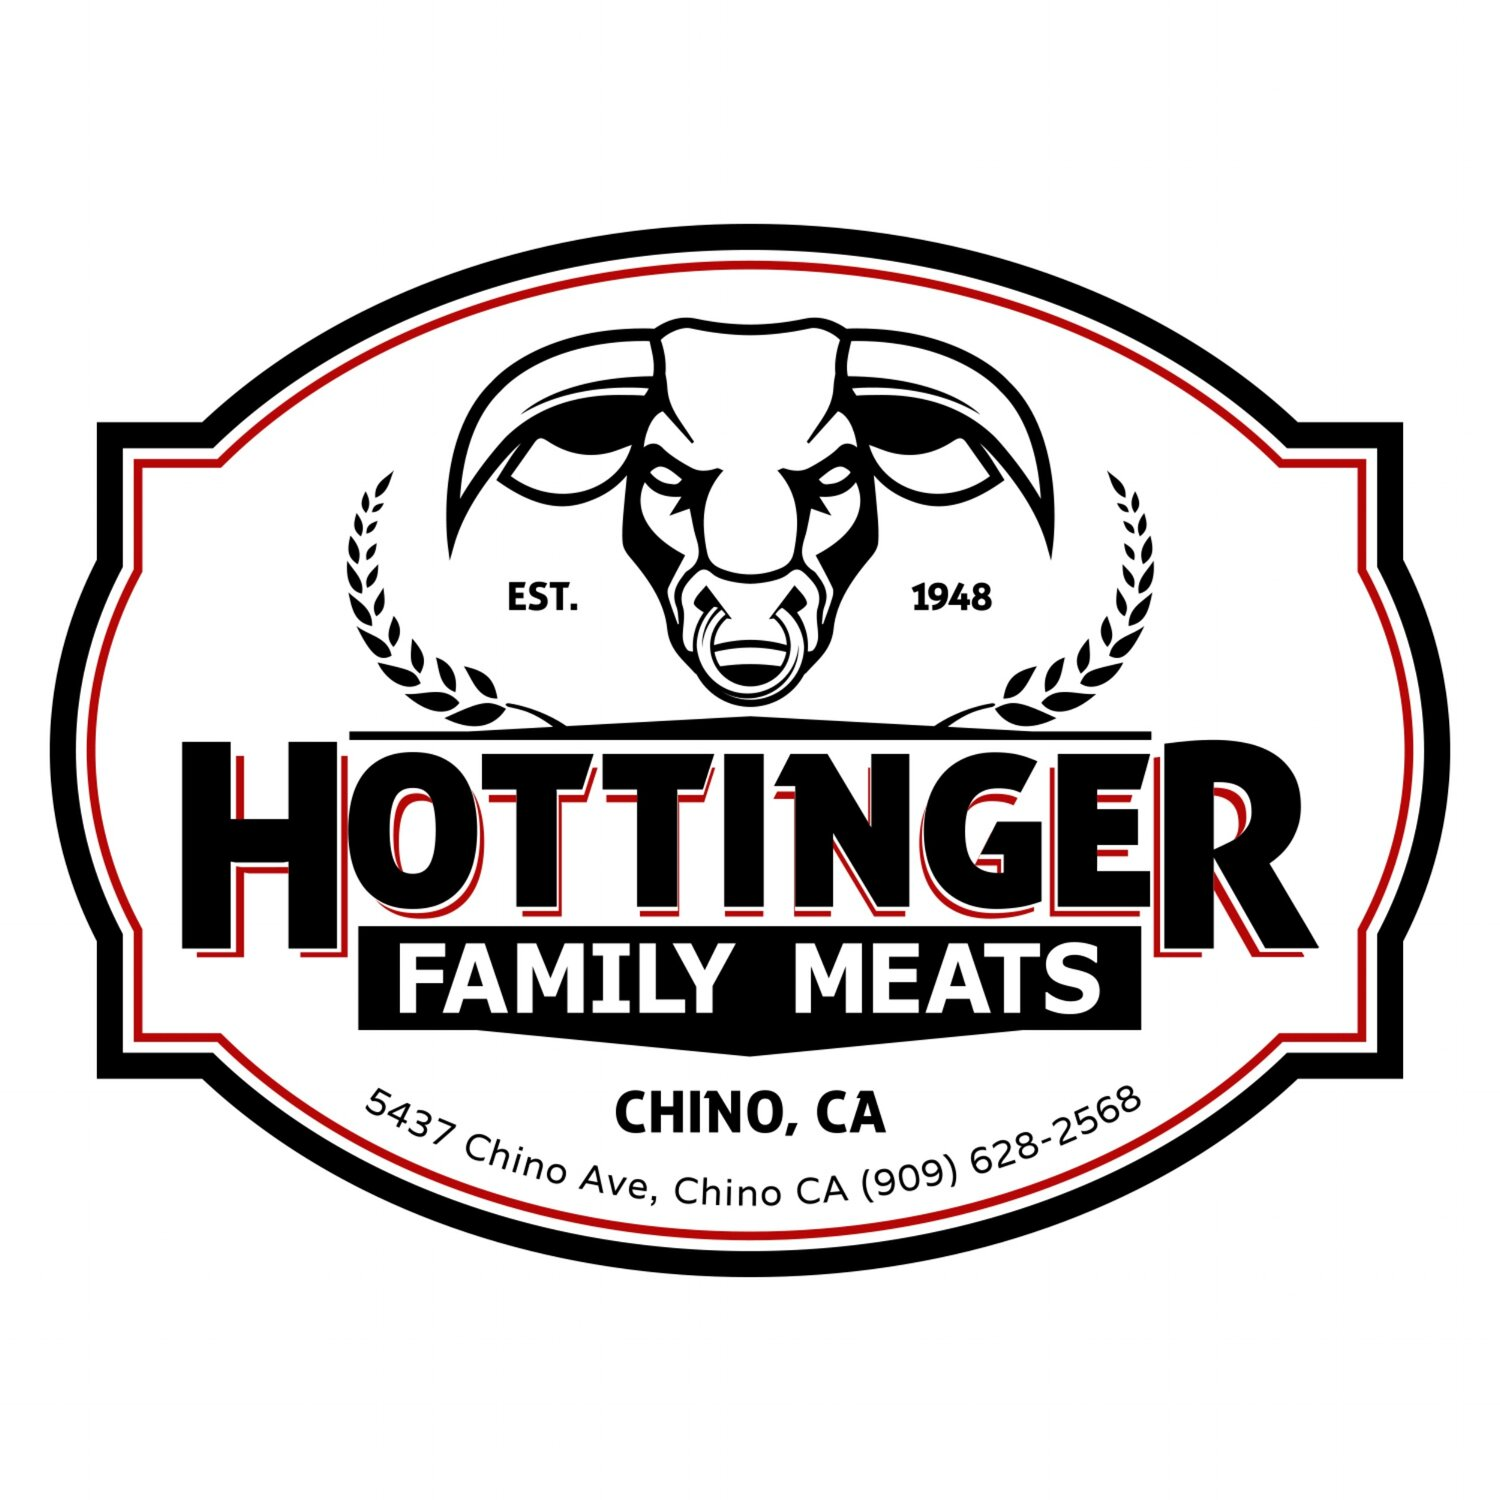 Hottinger Family Meats